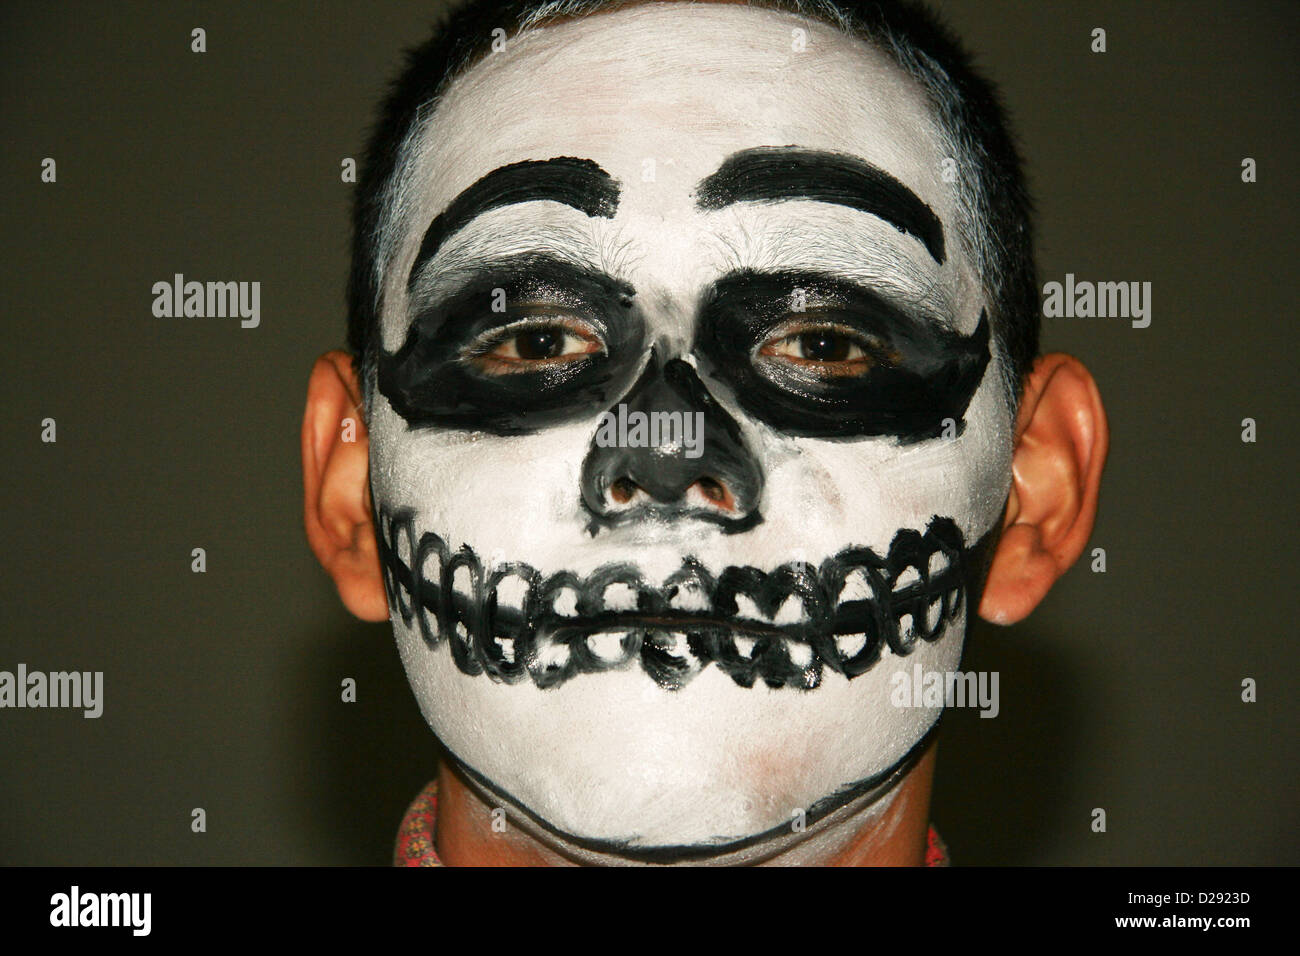 Painted Participant At Day Of The Dead Festivities At Xcaret Near Playa Del Carmen. Mexico - Stock Image